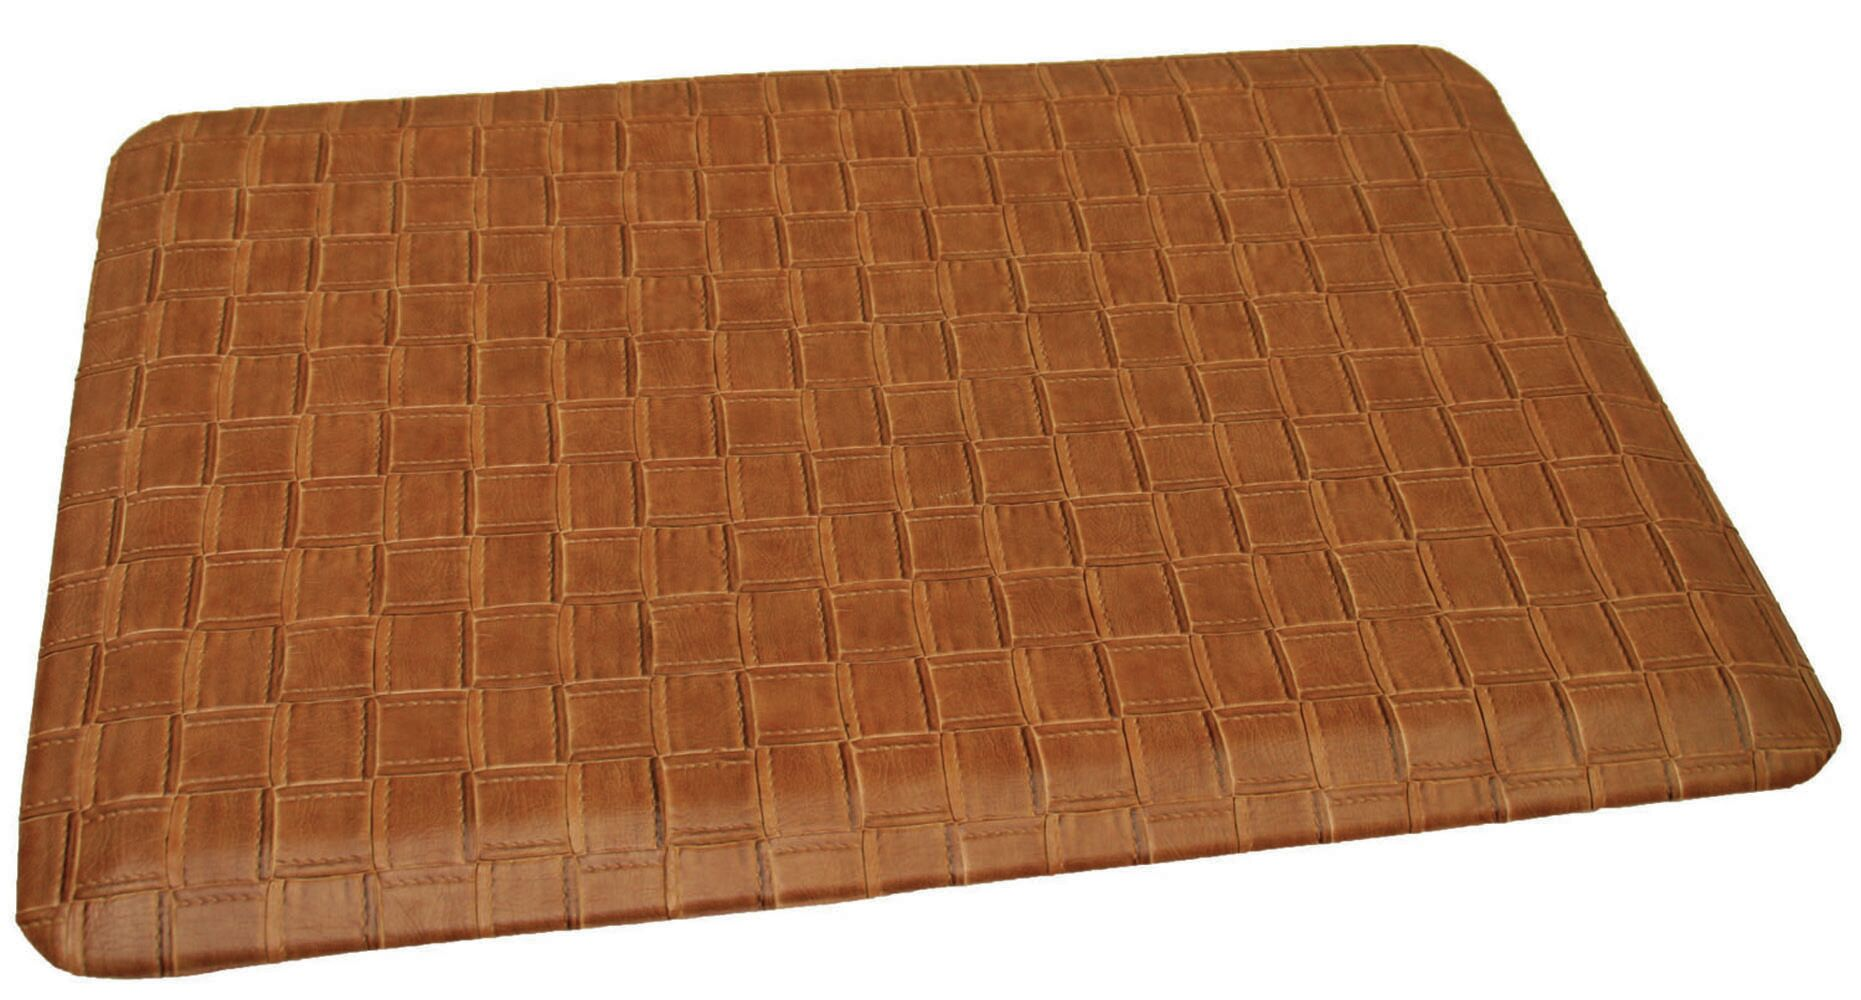 Anti-Fatigue Comfort Kitchen Mat Mat Size: 2' x 6', Color: Traditional Tanned